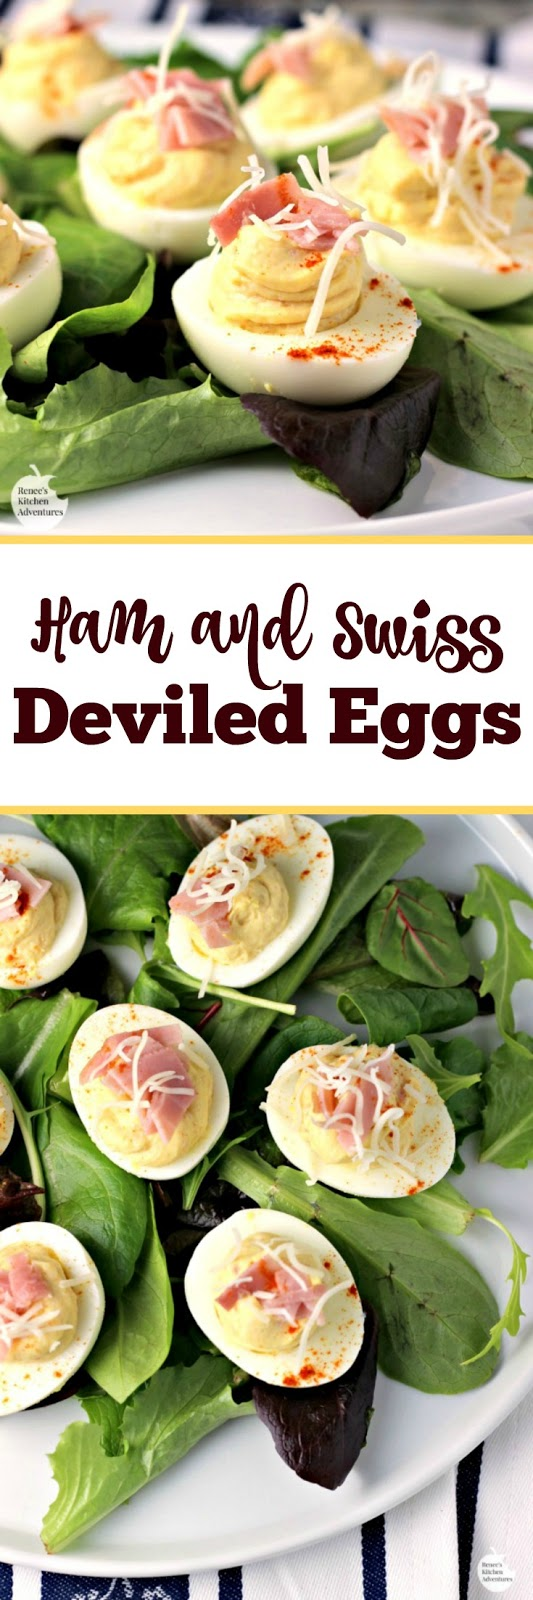 Ham and Swiss Deviled Eggs | by Renee's Kitchen Adventures - recipe for flavorful ham and cheese deviled eggs that make a great appetizer! #SundaySupper #RKArecipes